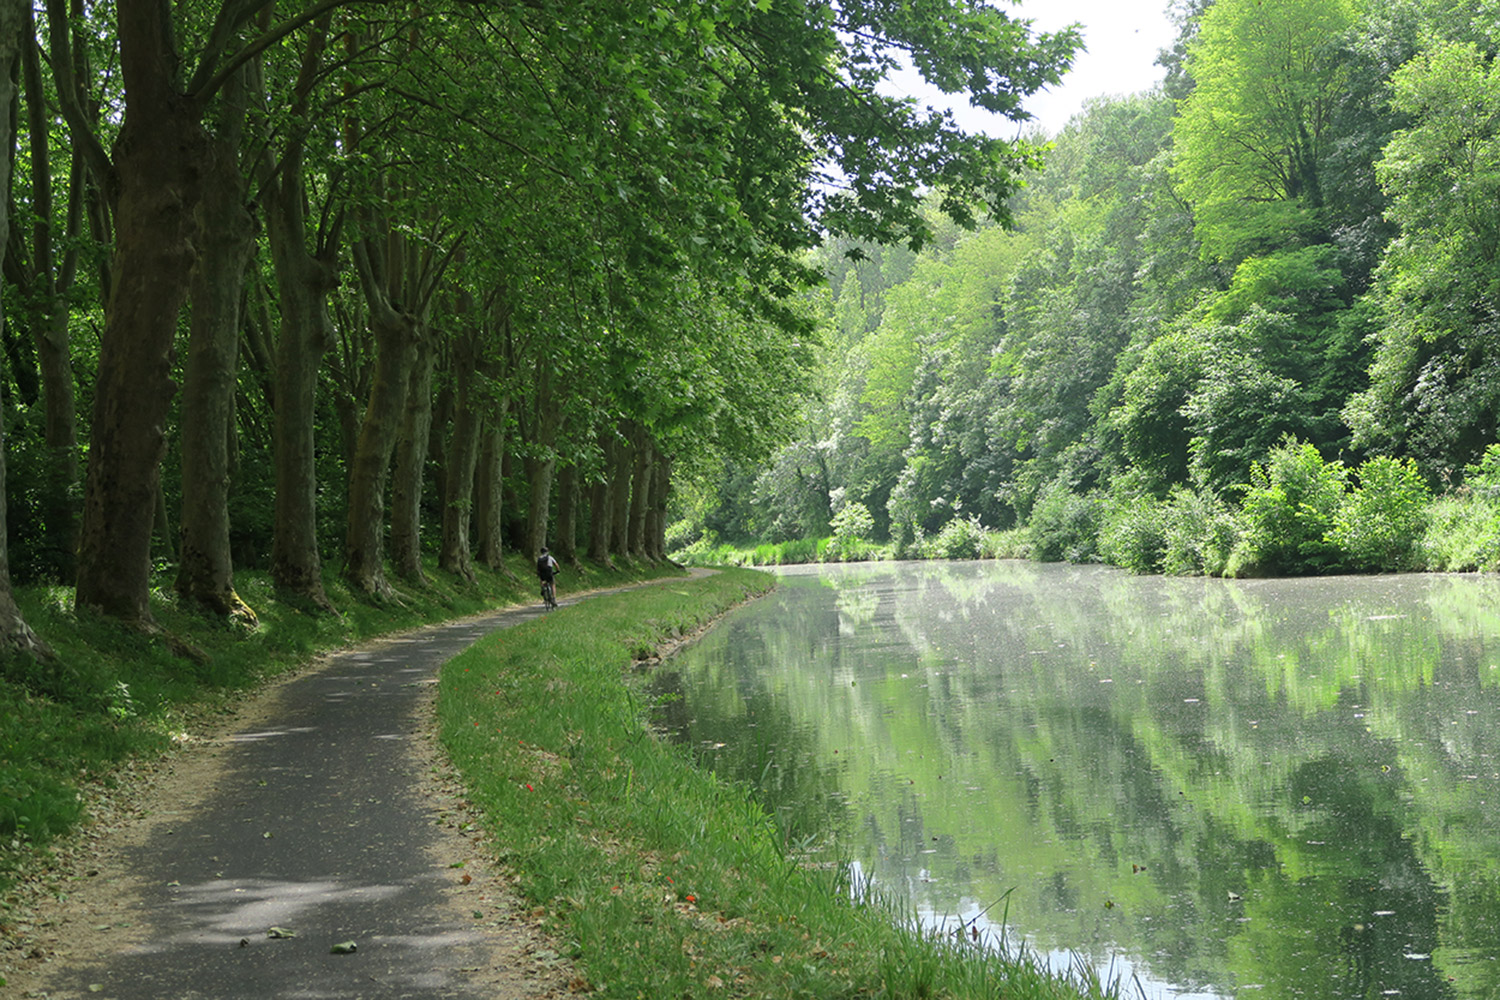 The Canal de la Garonne...it's a lot like this most of the way